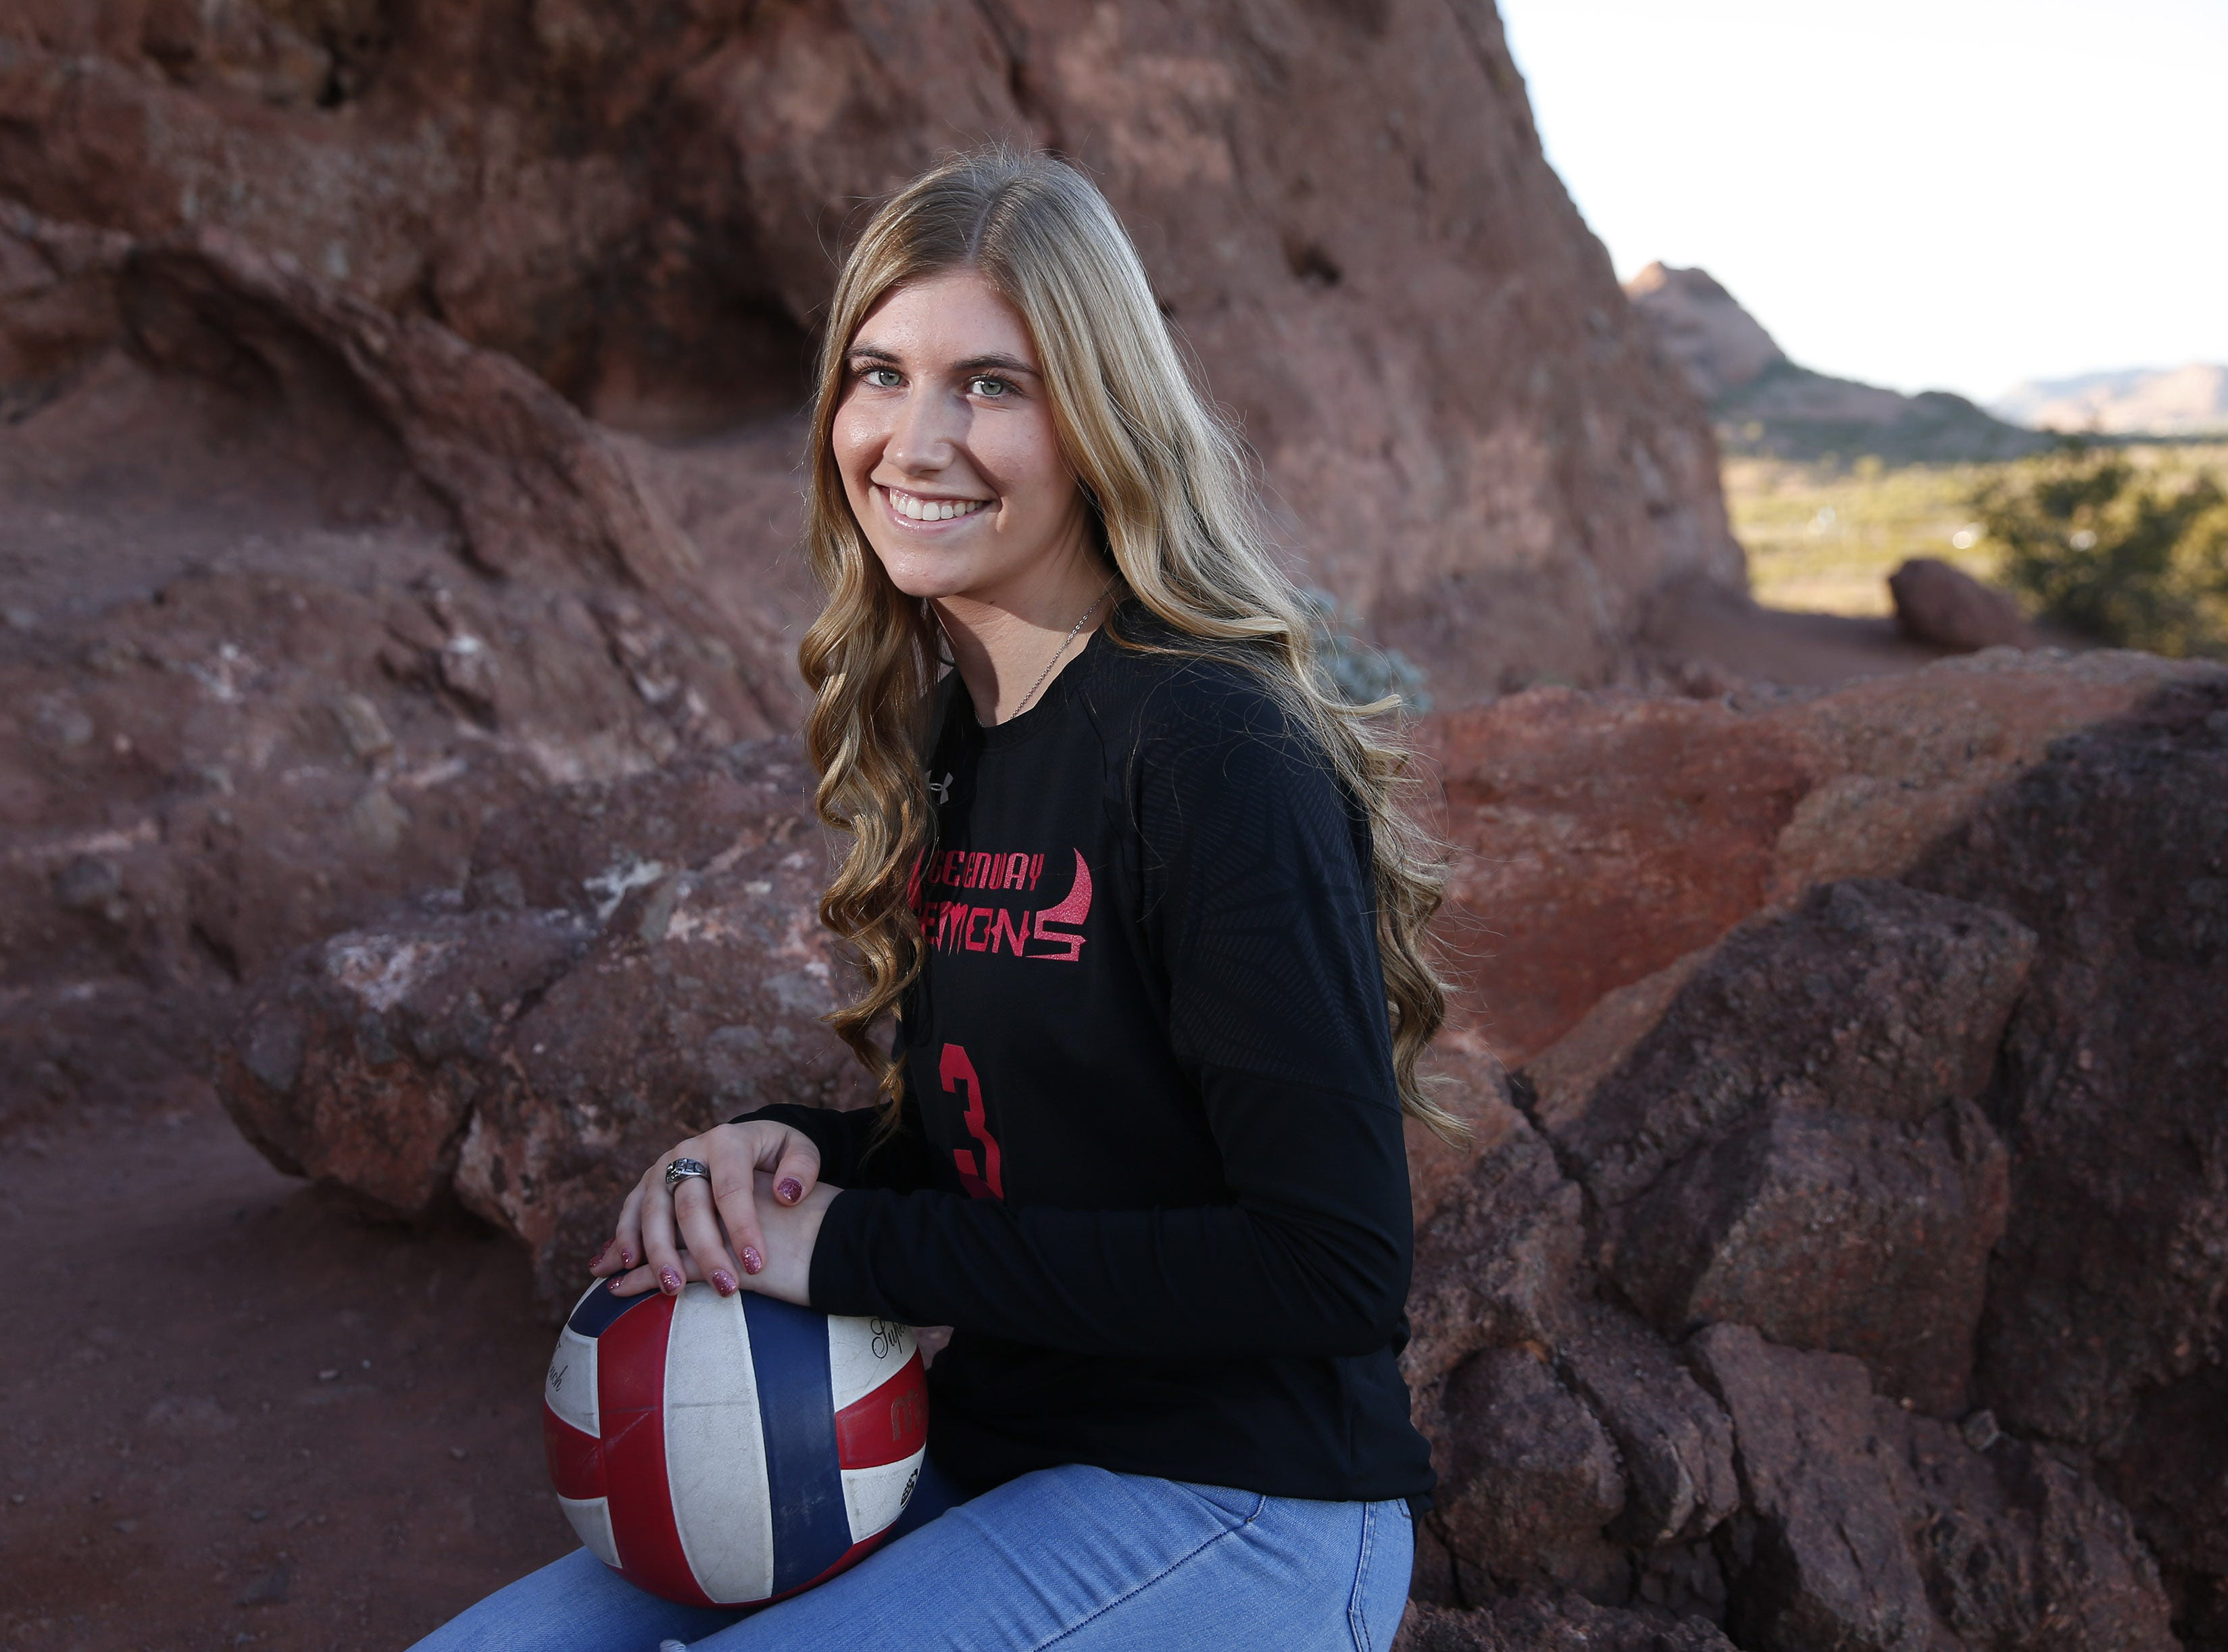 Mykenna Nelson of Greenway is a finalist for the azcentral Sports Awards Girls High School Volleyball of the Year. #azcsportsawards